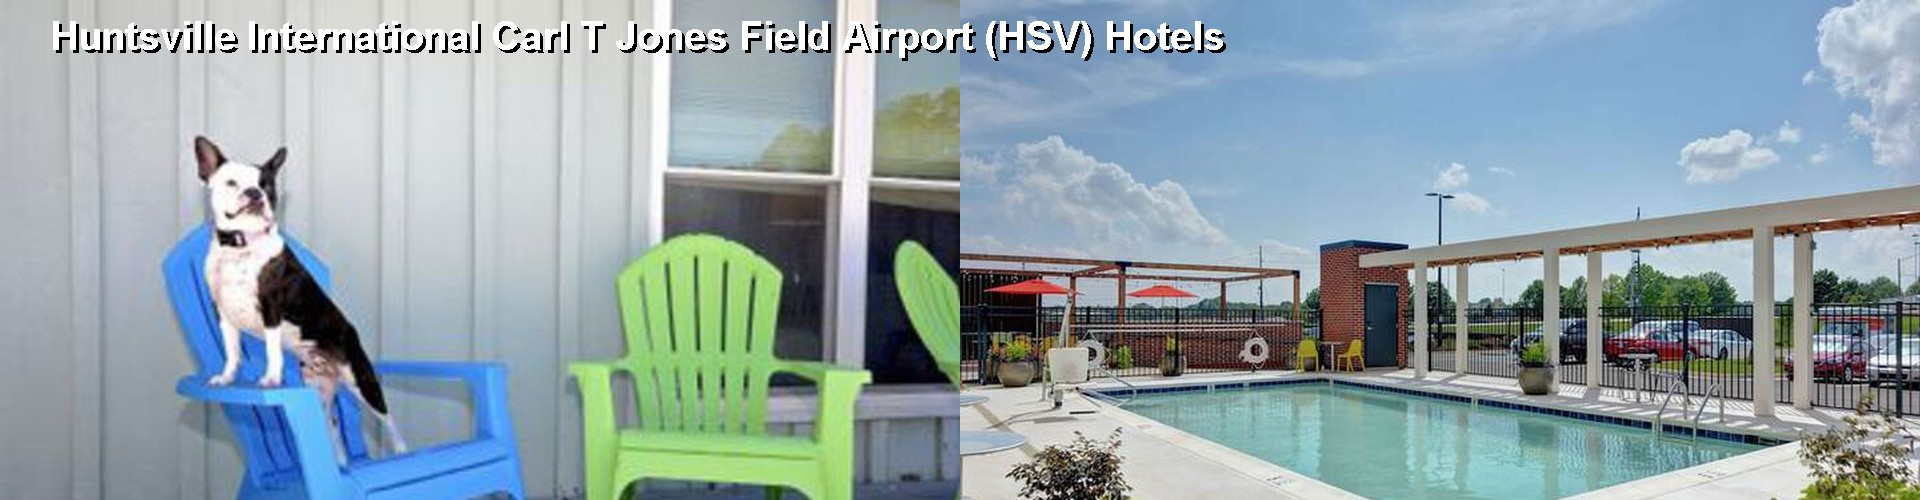 5 Best Hotels near Huntsville International Carl T Jones Field Airport (HSV)